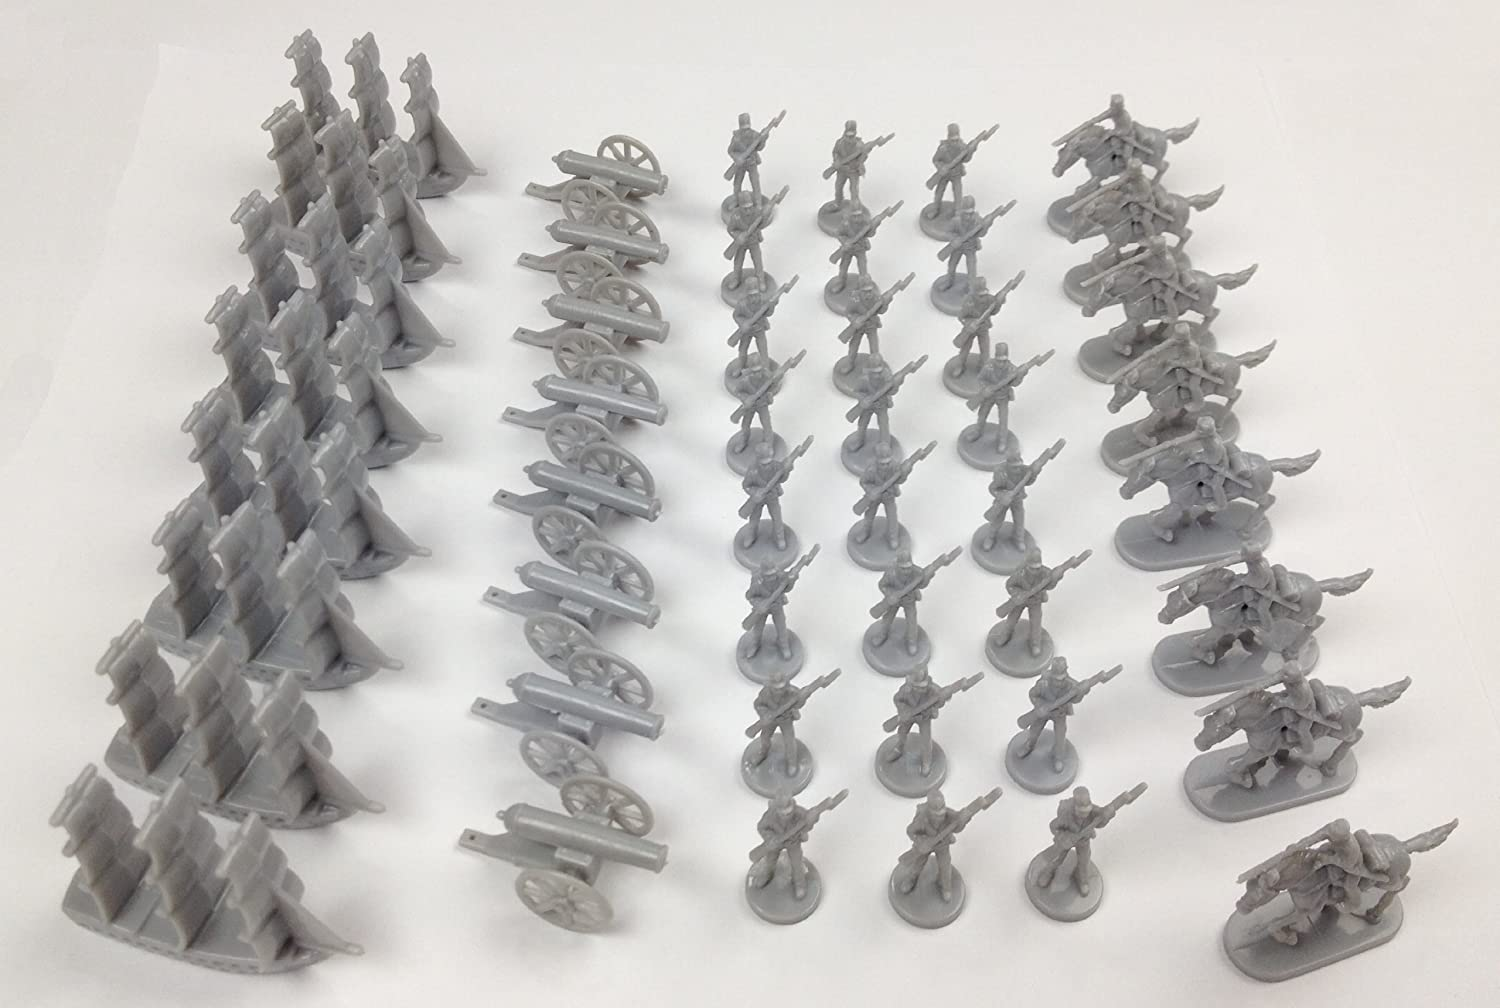 Napoleonic & Civil War Military Miniatures (Grey): Plastic Toy Soldiers Set: Infantry, Cavalry, Artillery, Ships